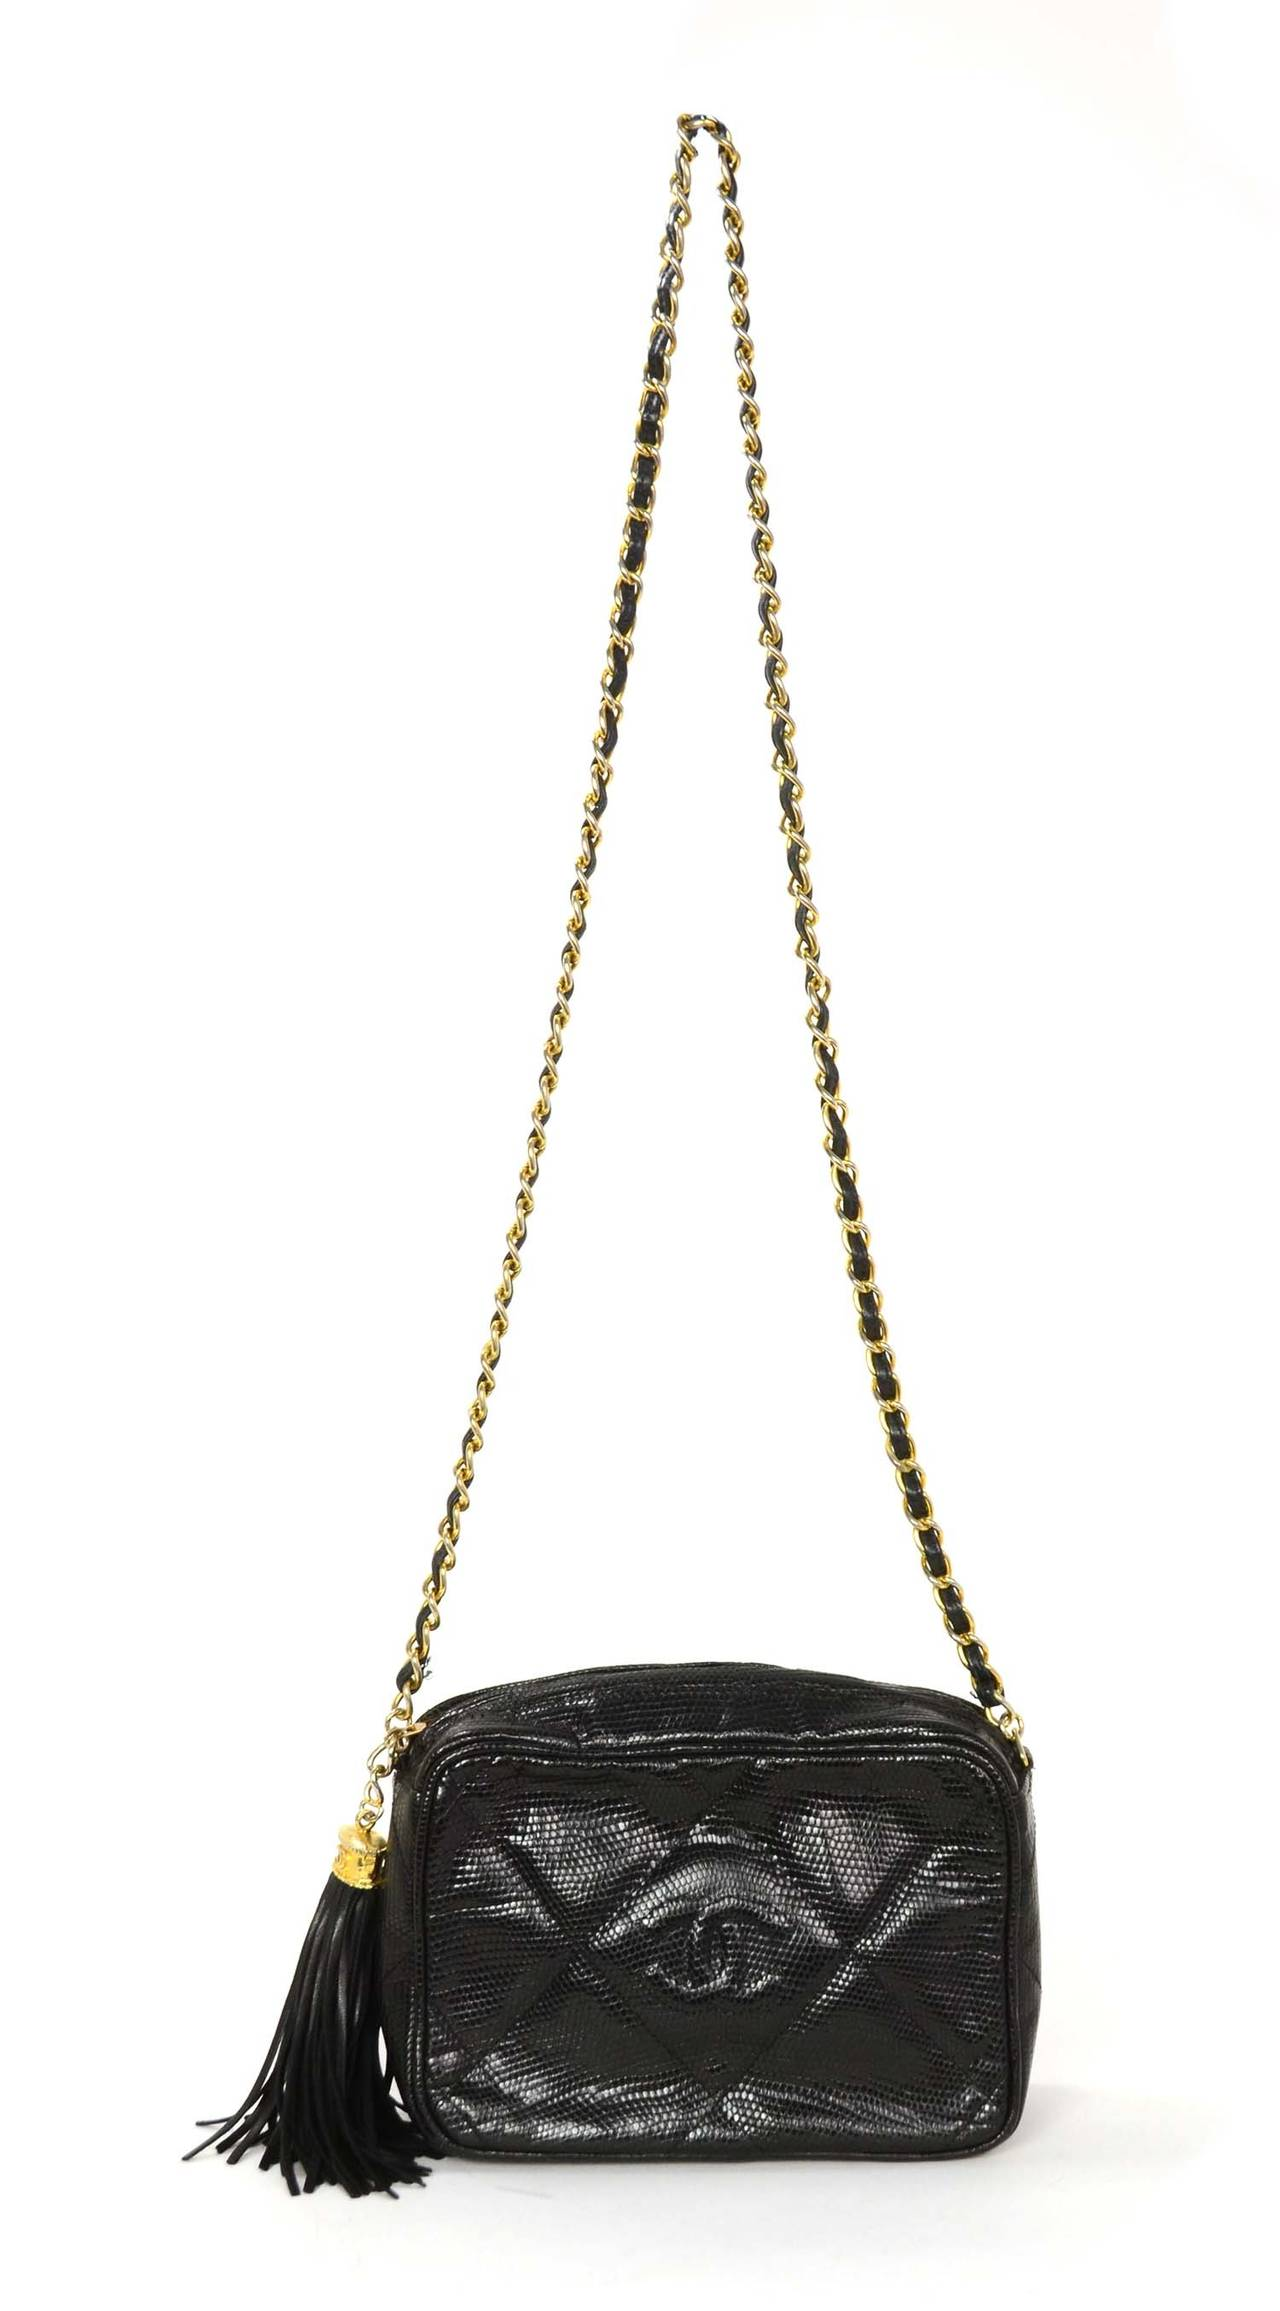 09d22e35bfaa CHANEL '80s Vintage Black Lizard Quilted Camera Bag w/ Tassel GHW For Sale 5